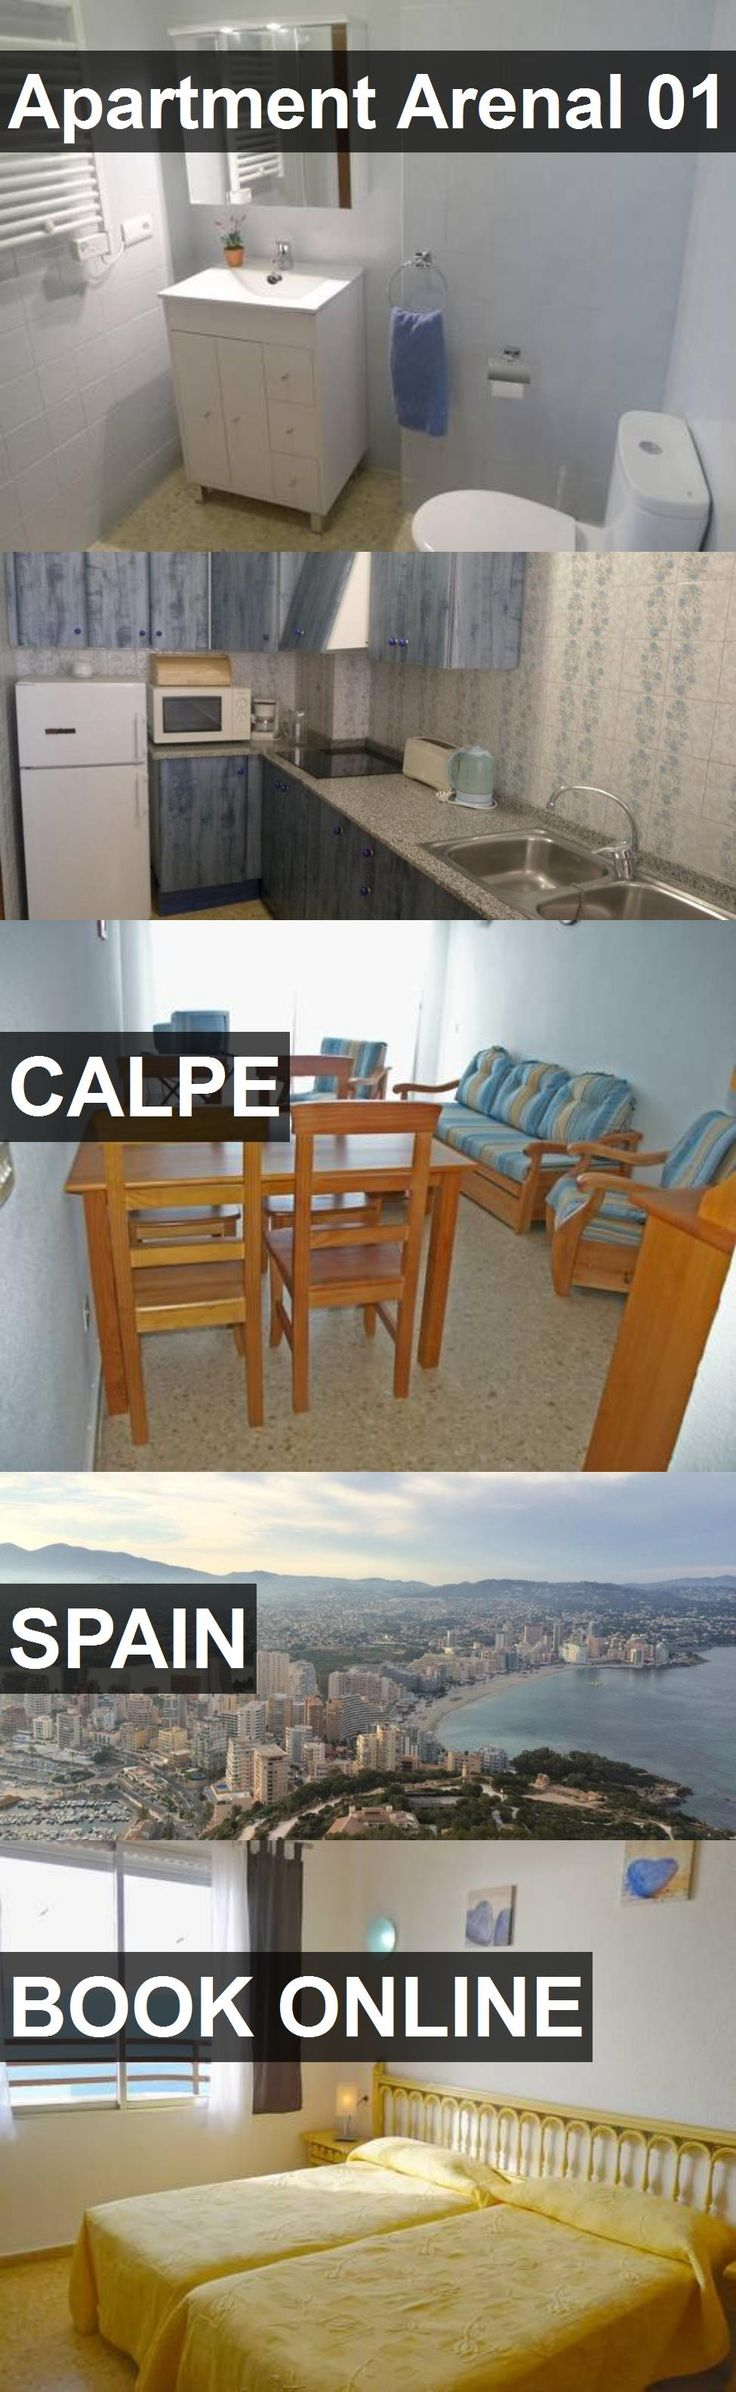 Apartment Arenal 01 in Calpe, Spain. For more information, photos, reviews and best prices please follow the link. #Spain #Calpe #travel #vacation #apartment